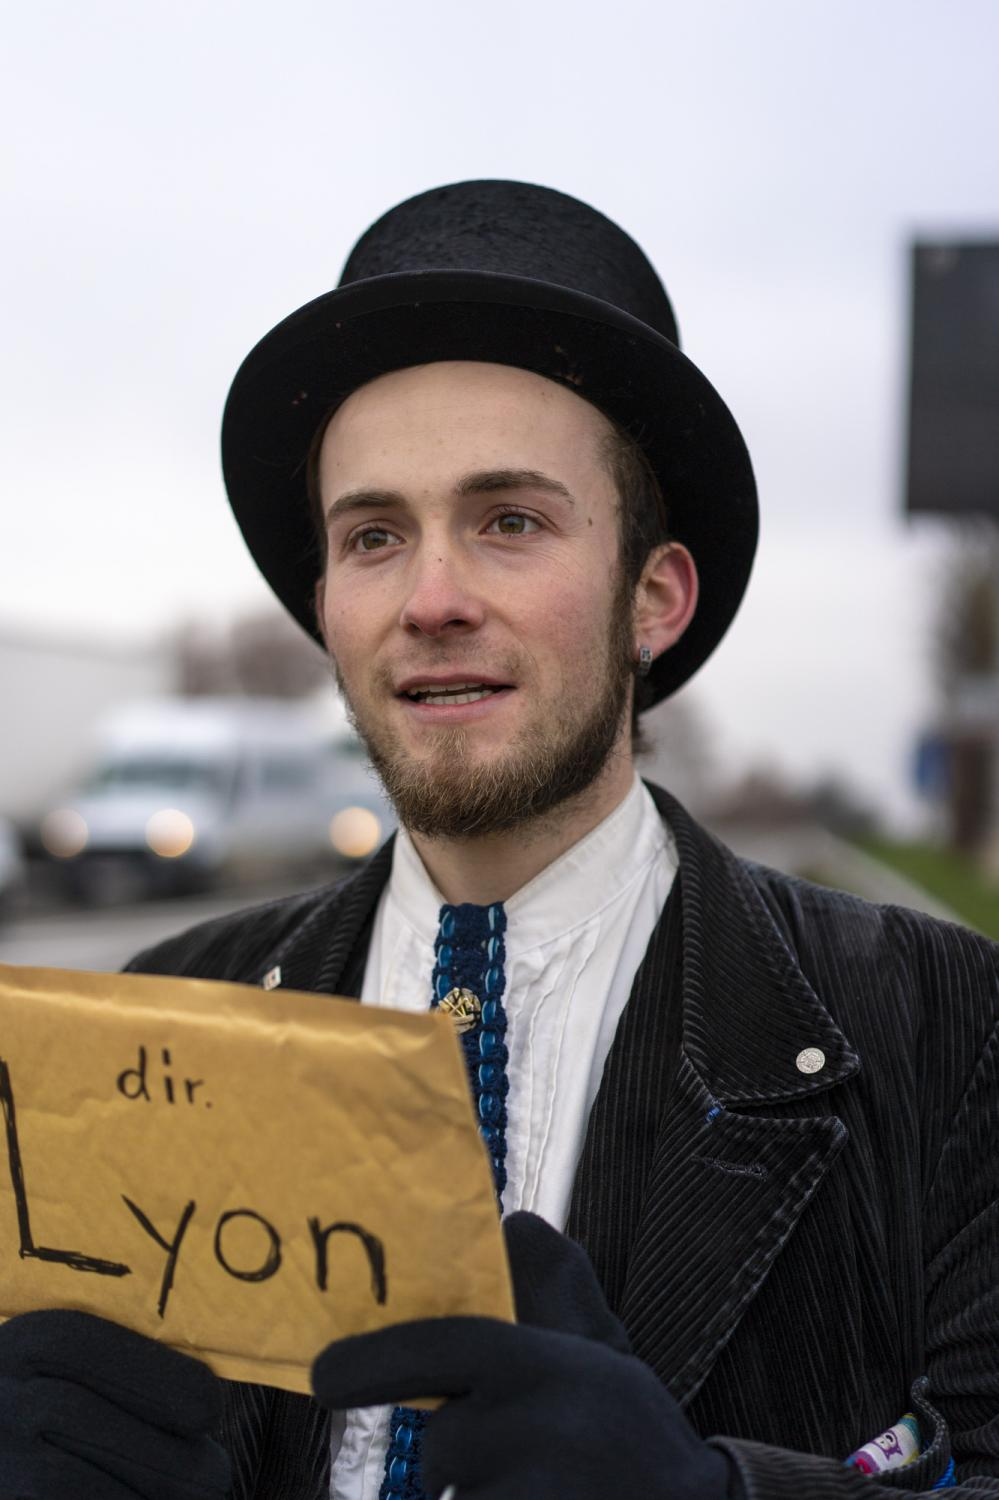 """Matthias holds a sign reading """"Direction of Lyon"""", to show drivers as he hitch-hikes on the driveway towards the highway of Strasbourg, France, on December 2, 2020. After walking to the outskirts of the city and standing on the right driveway, no car stopped for a couple of hours and a different approach was agreed: after a break in the adjacent shopping mall to warm up, the two travellers went to approach car drivers directly at a nearby gas station."""